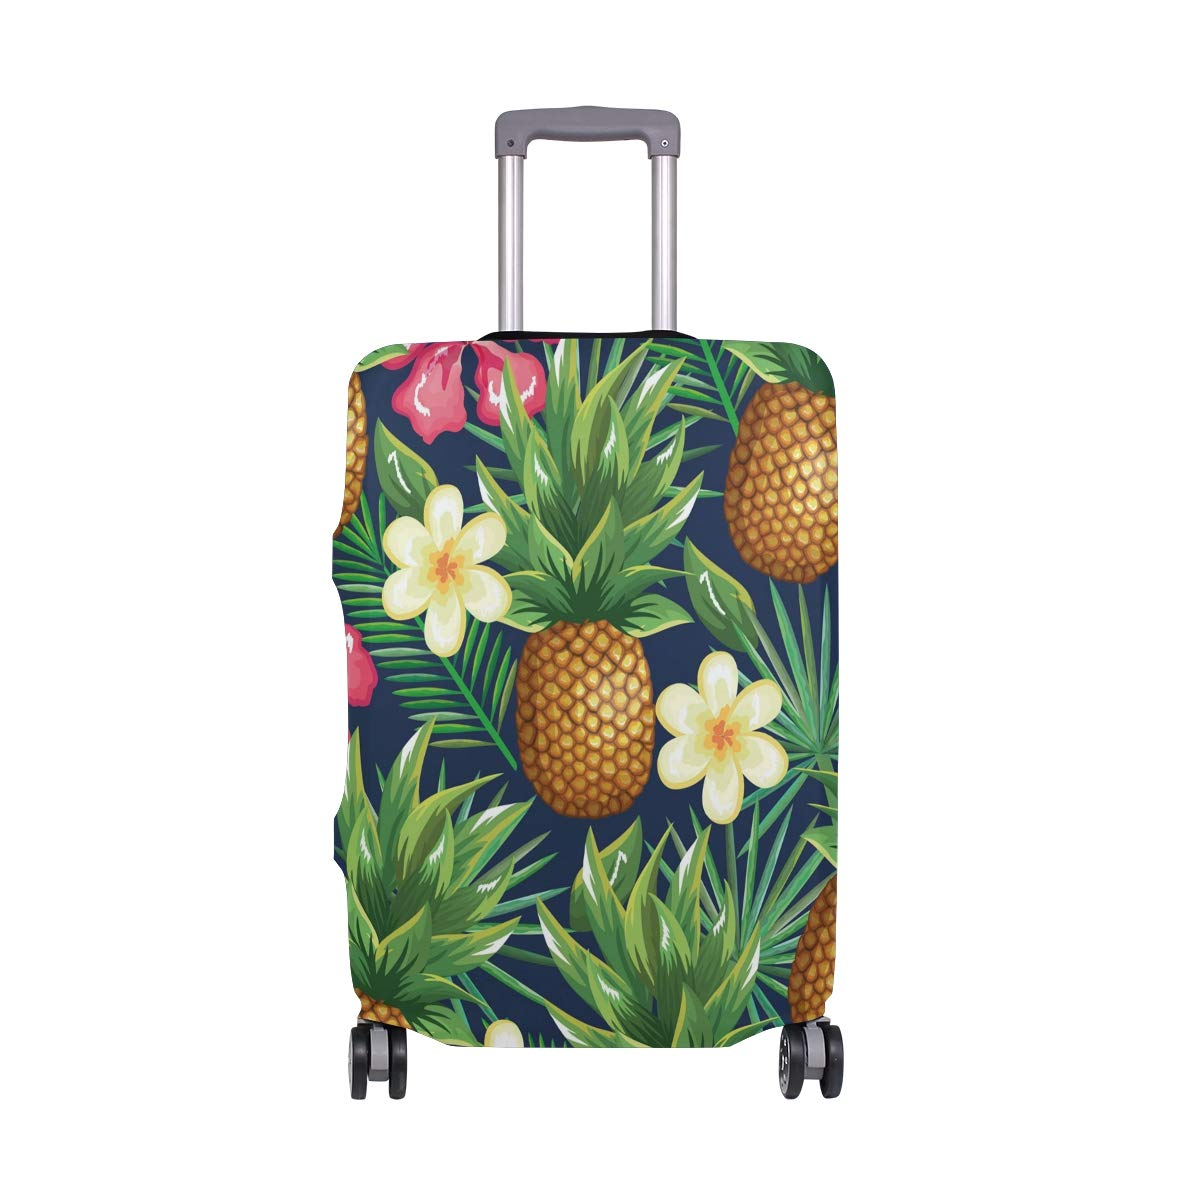 Travel Luggage Cover Tropical Pineapple Elastic Suitcase Protector Washable Baggage Covers Fits 18-32 inch